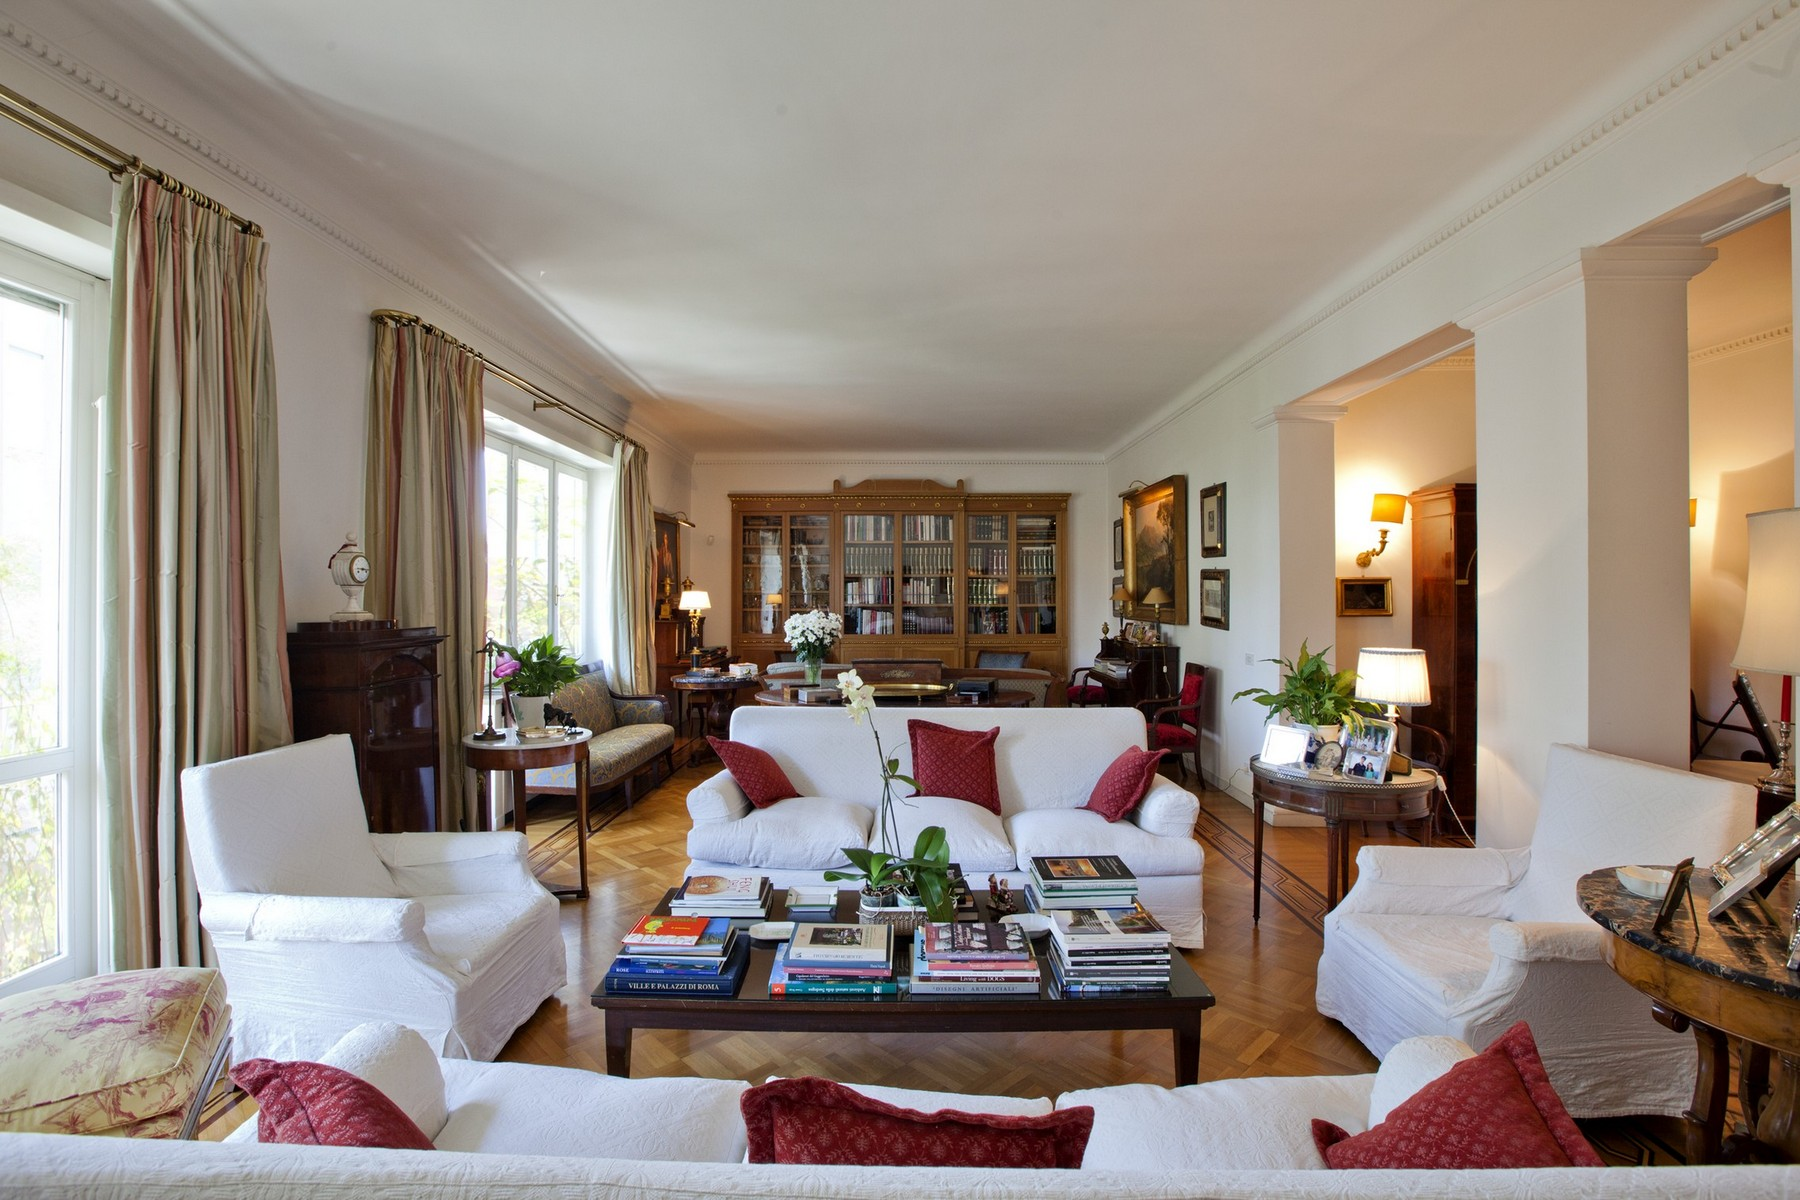 Apartment for Sale at Splendid Rome Apartment Pietro Antonio Micheli Rome, Rome, 00197 Italy